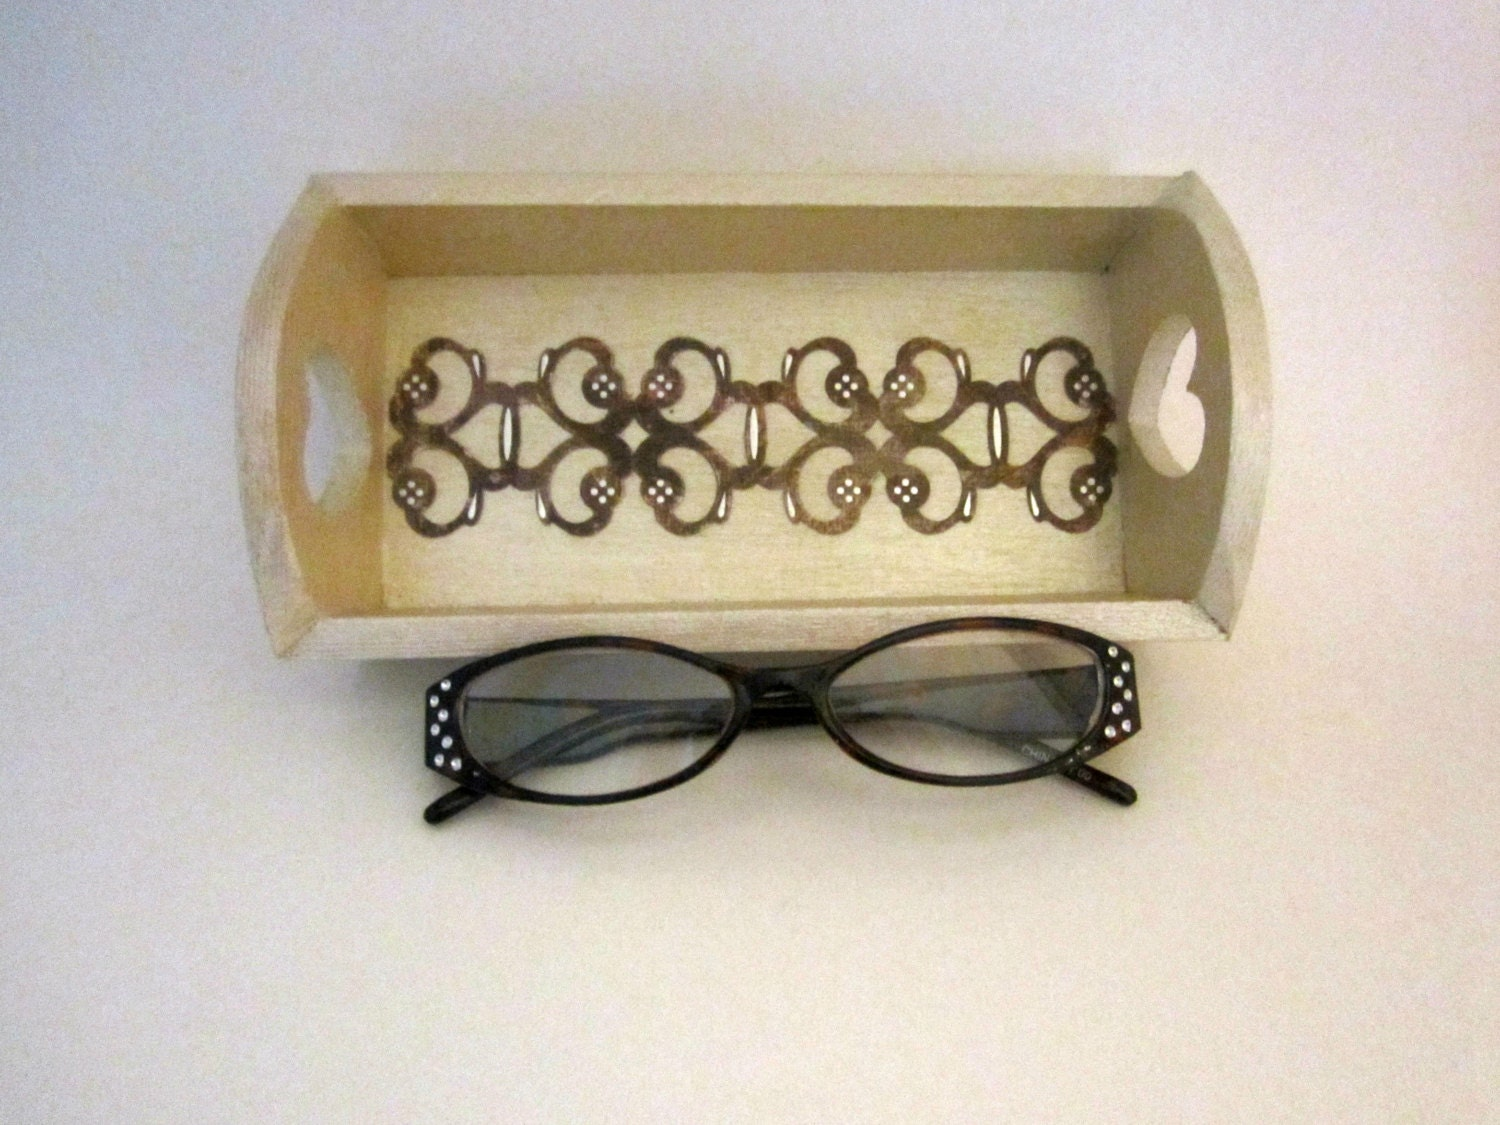 Eyeglasses Holder, Jewelry Tray, Ring Holder, Champagne Brown Silver, Wooden Tray, Desk Accessory - JustAddJewelry